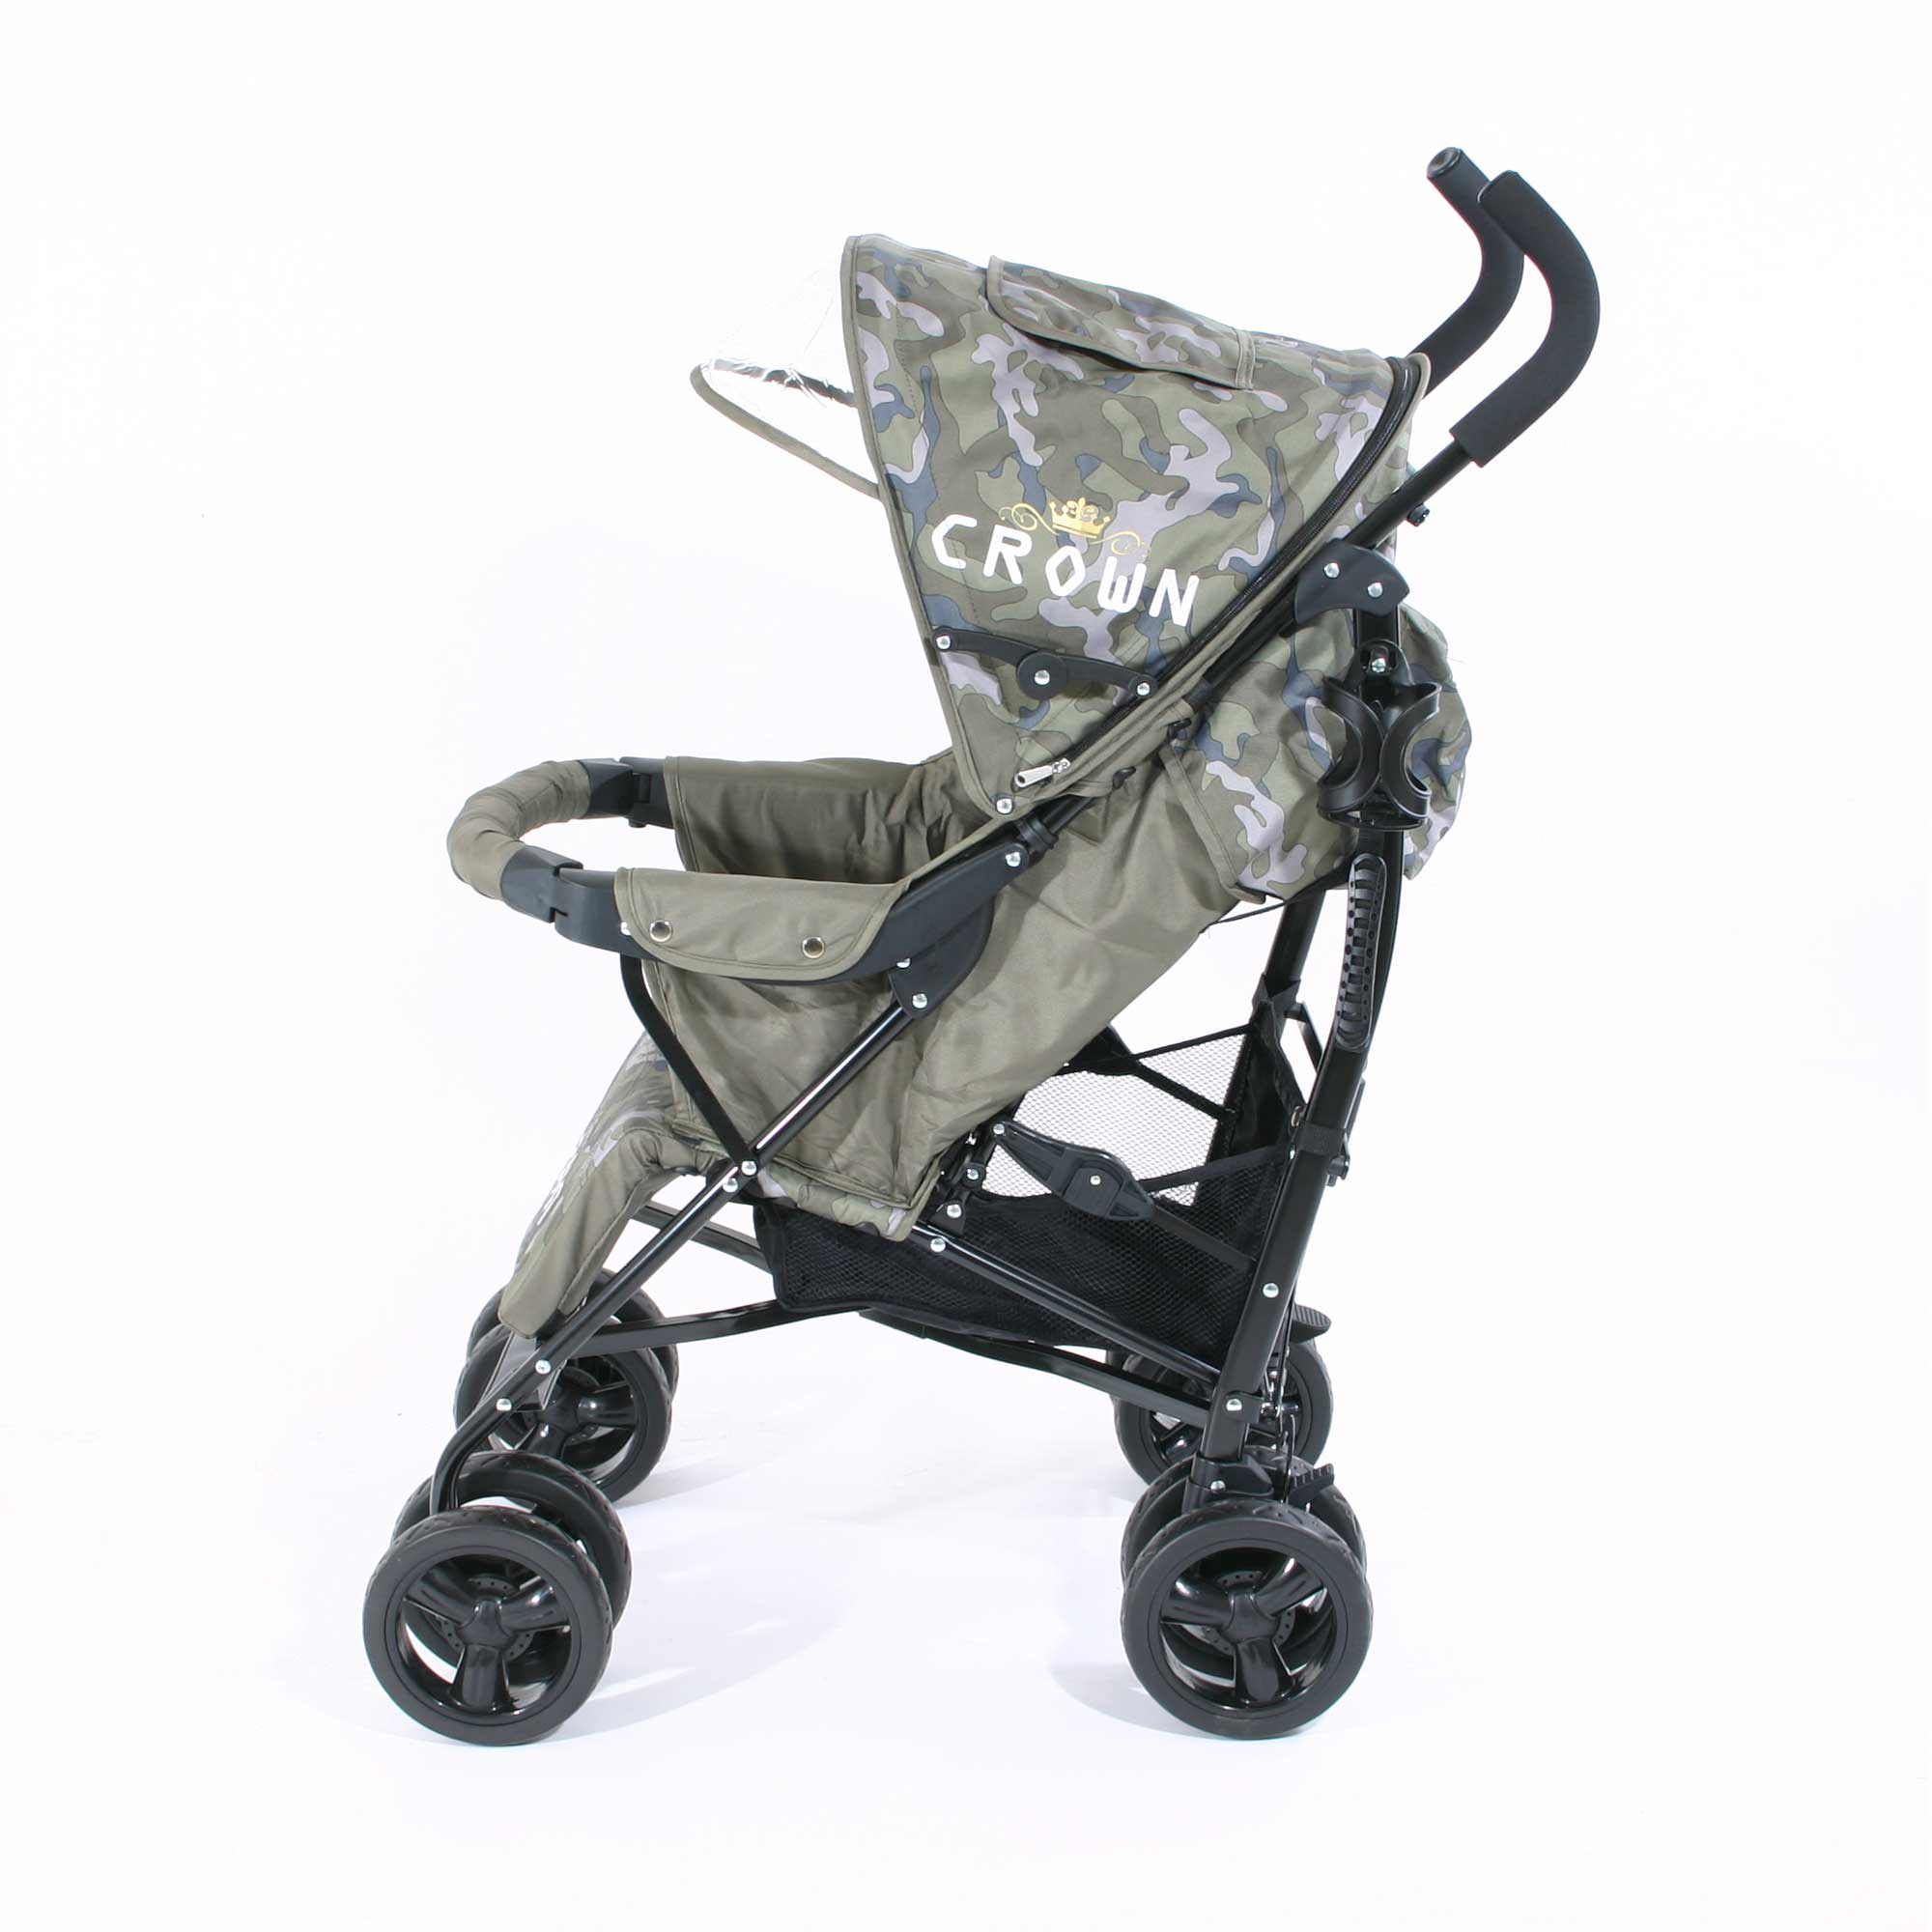 crown st520 buggy kinderwagen camou kinderwagen buggy. Black Bedroom Furniture Sets. Home Design Ideas